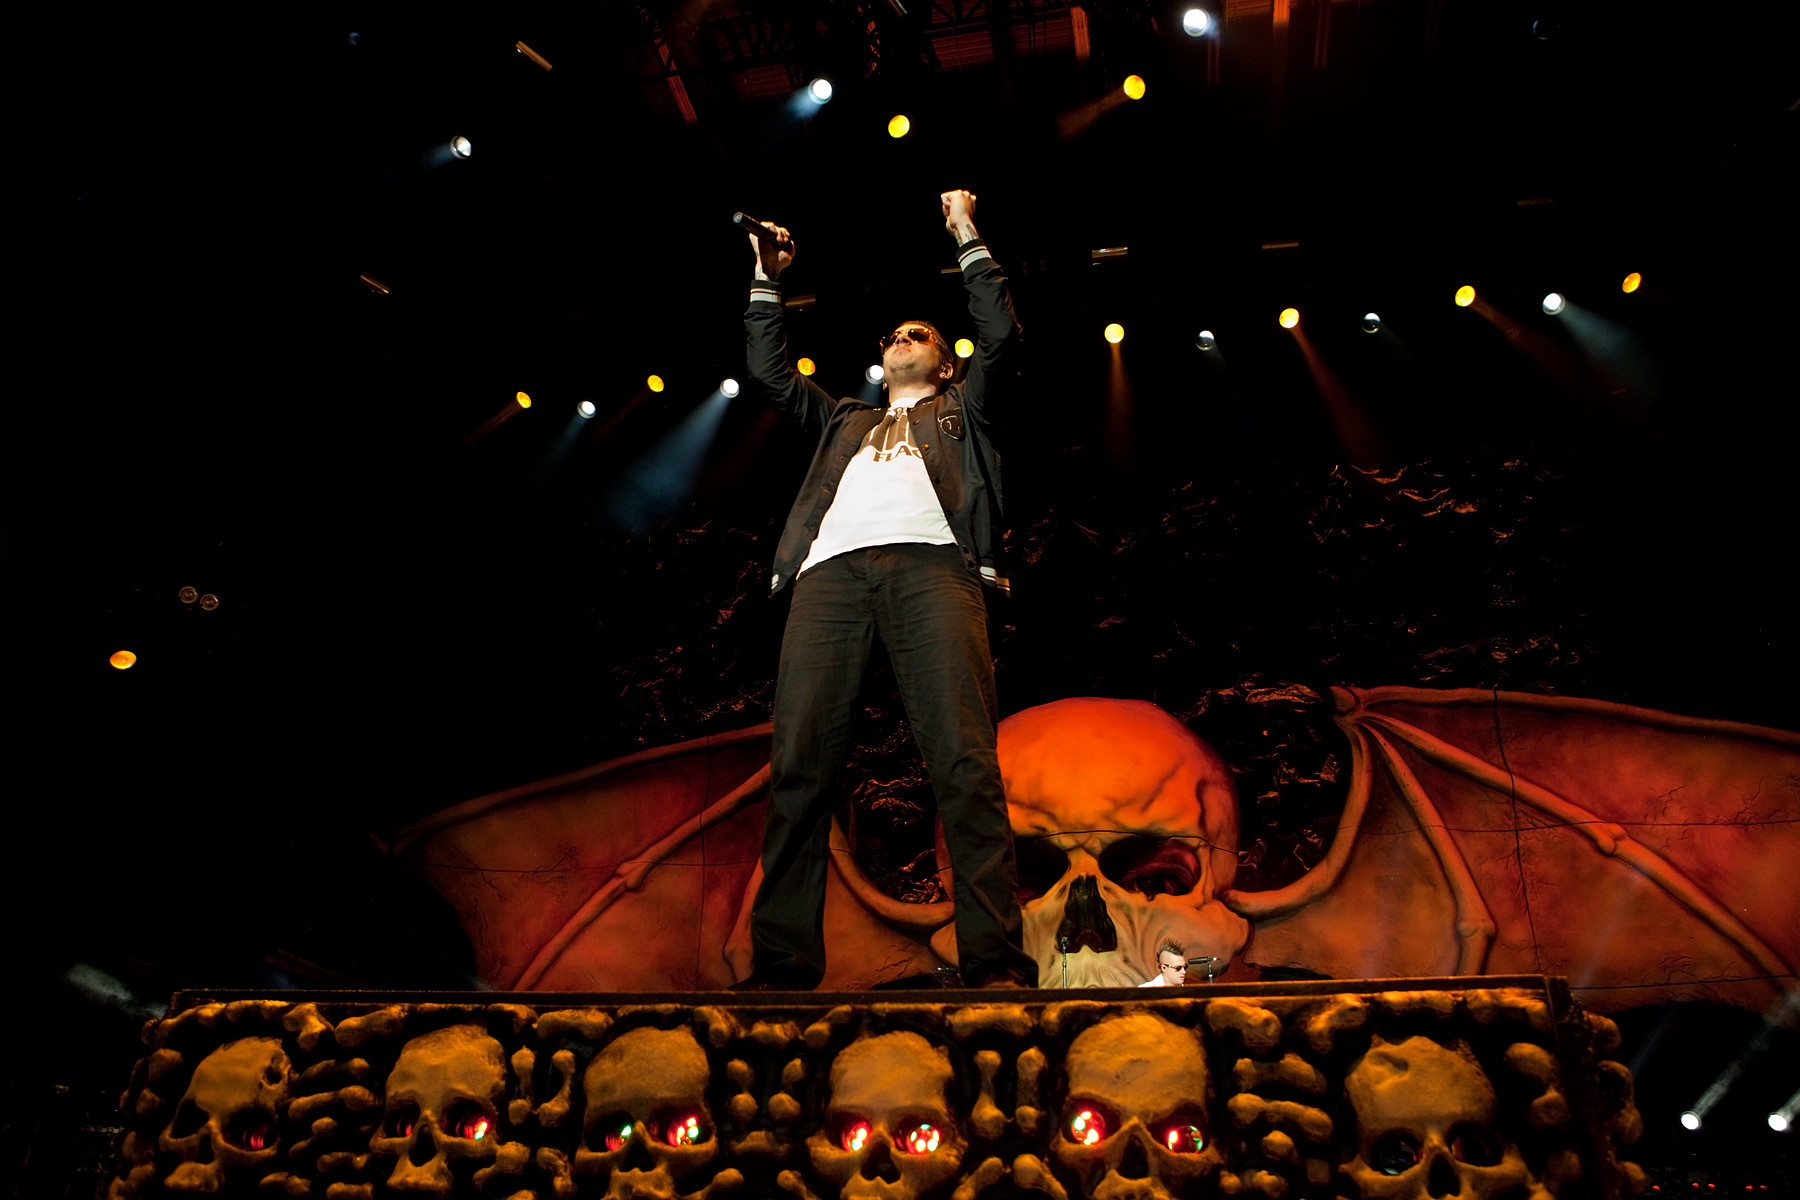 Avenged Sevenfold @ Uproar 2011